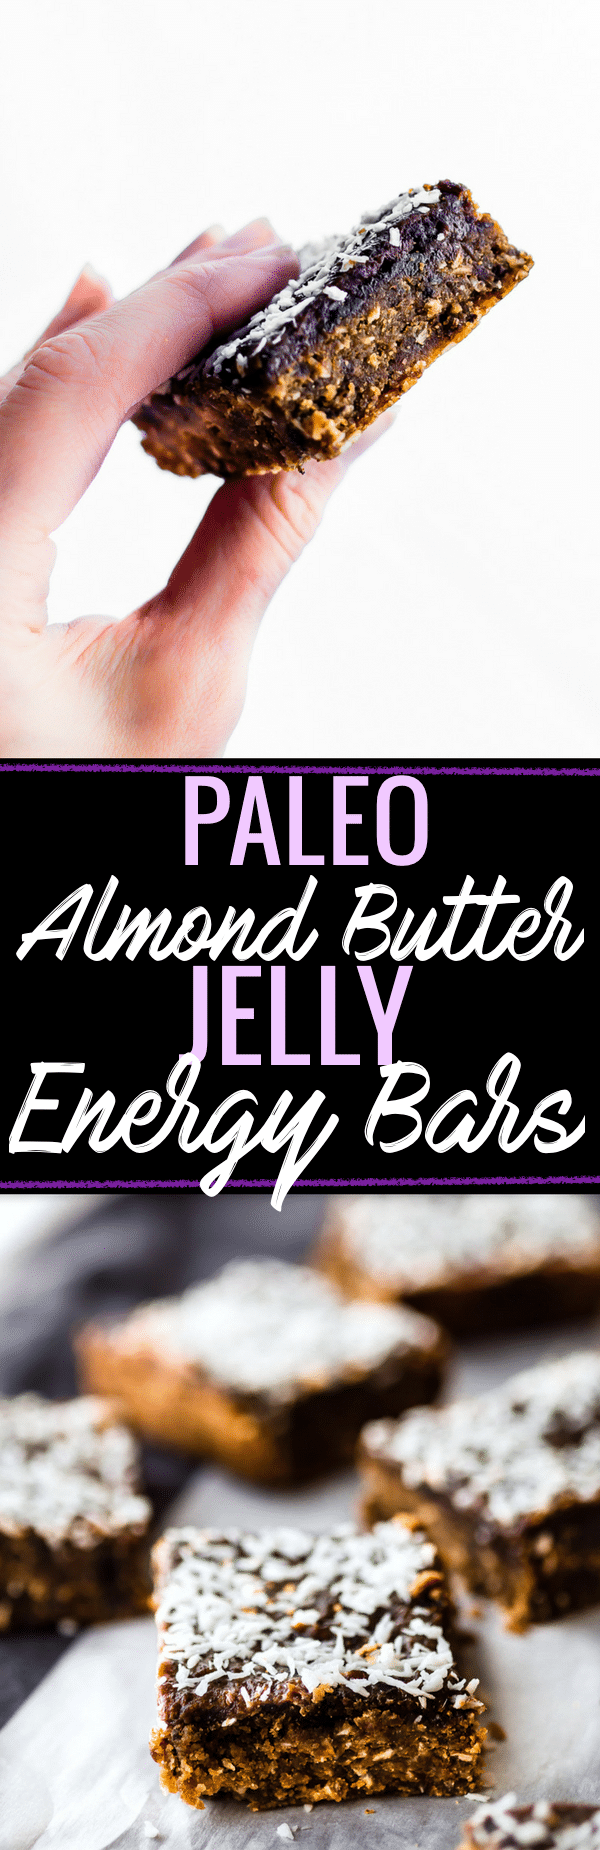 TThese Paleo Almond Butter Jelly Energy Bars are one of our favorite bars that fuel us for workouts and snacking on the go. Made with few ingredients; no oils and no sugar added. Blended and Baked in just 30 minutes, Which makes them pretty amazing! So chewy and flavorful that you'd never know they were healthy. Freezer friendly. www.cottercrunch.com